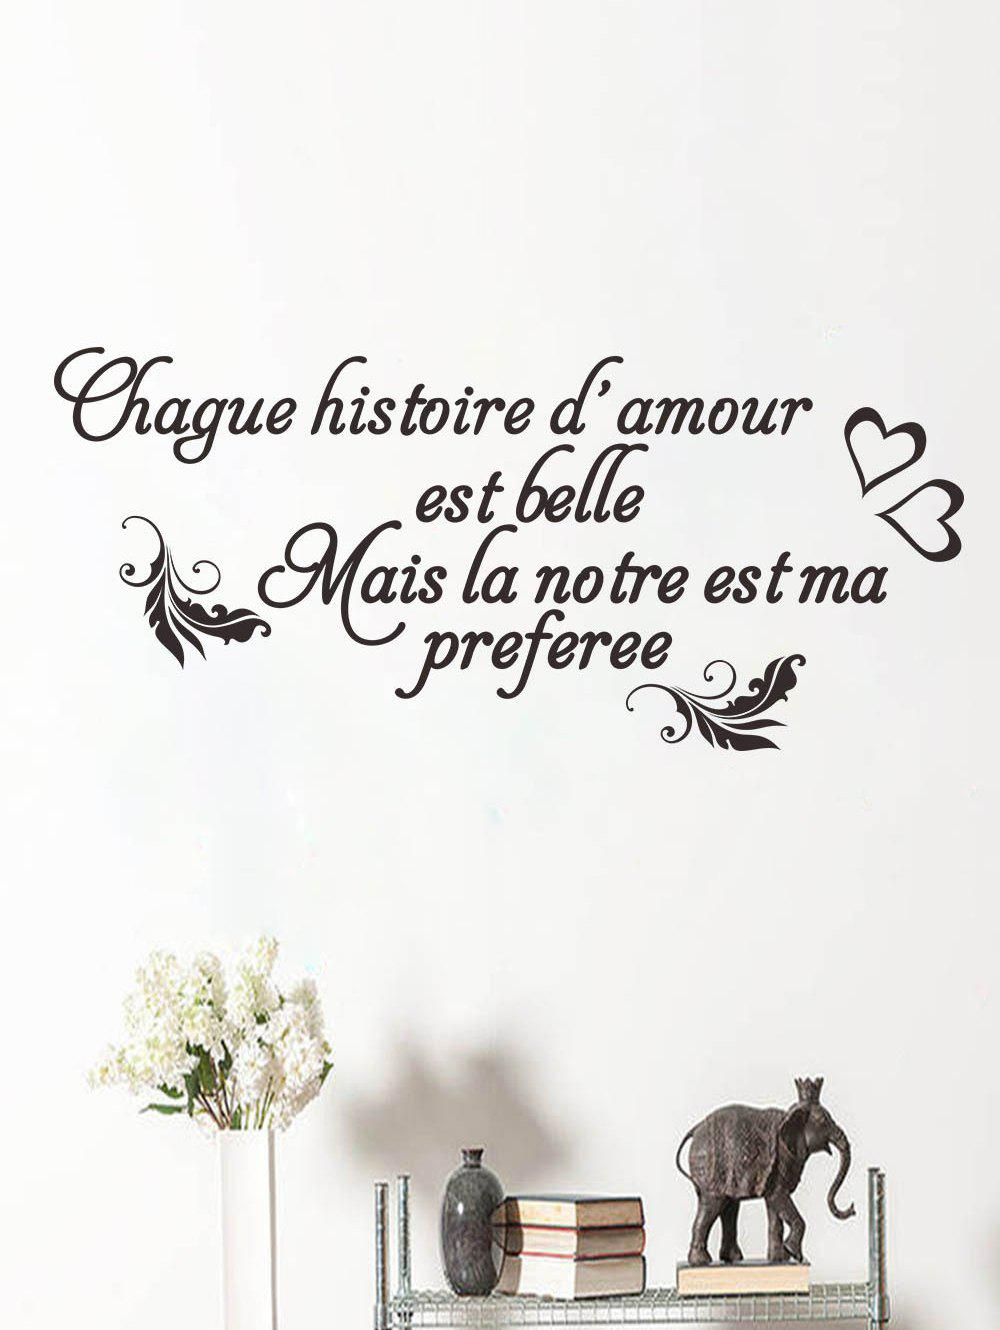 Online Quotes and Hearts Print Removable Wall Art Stickers